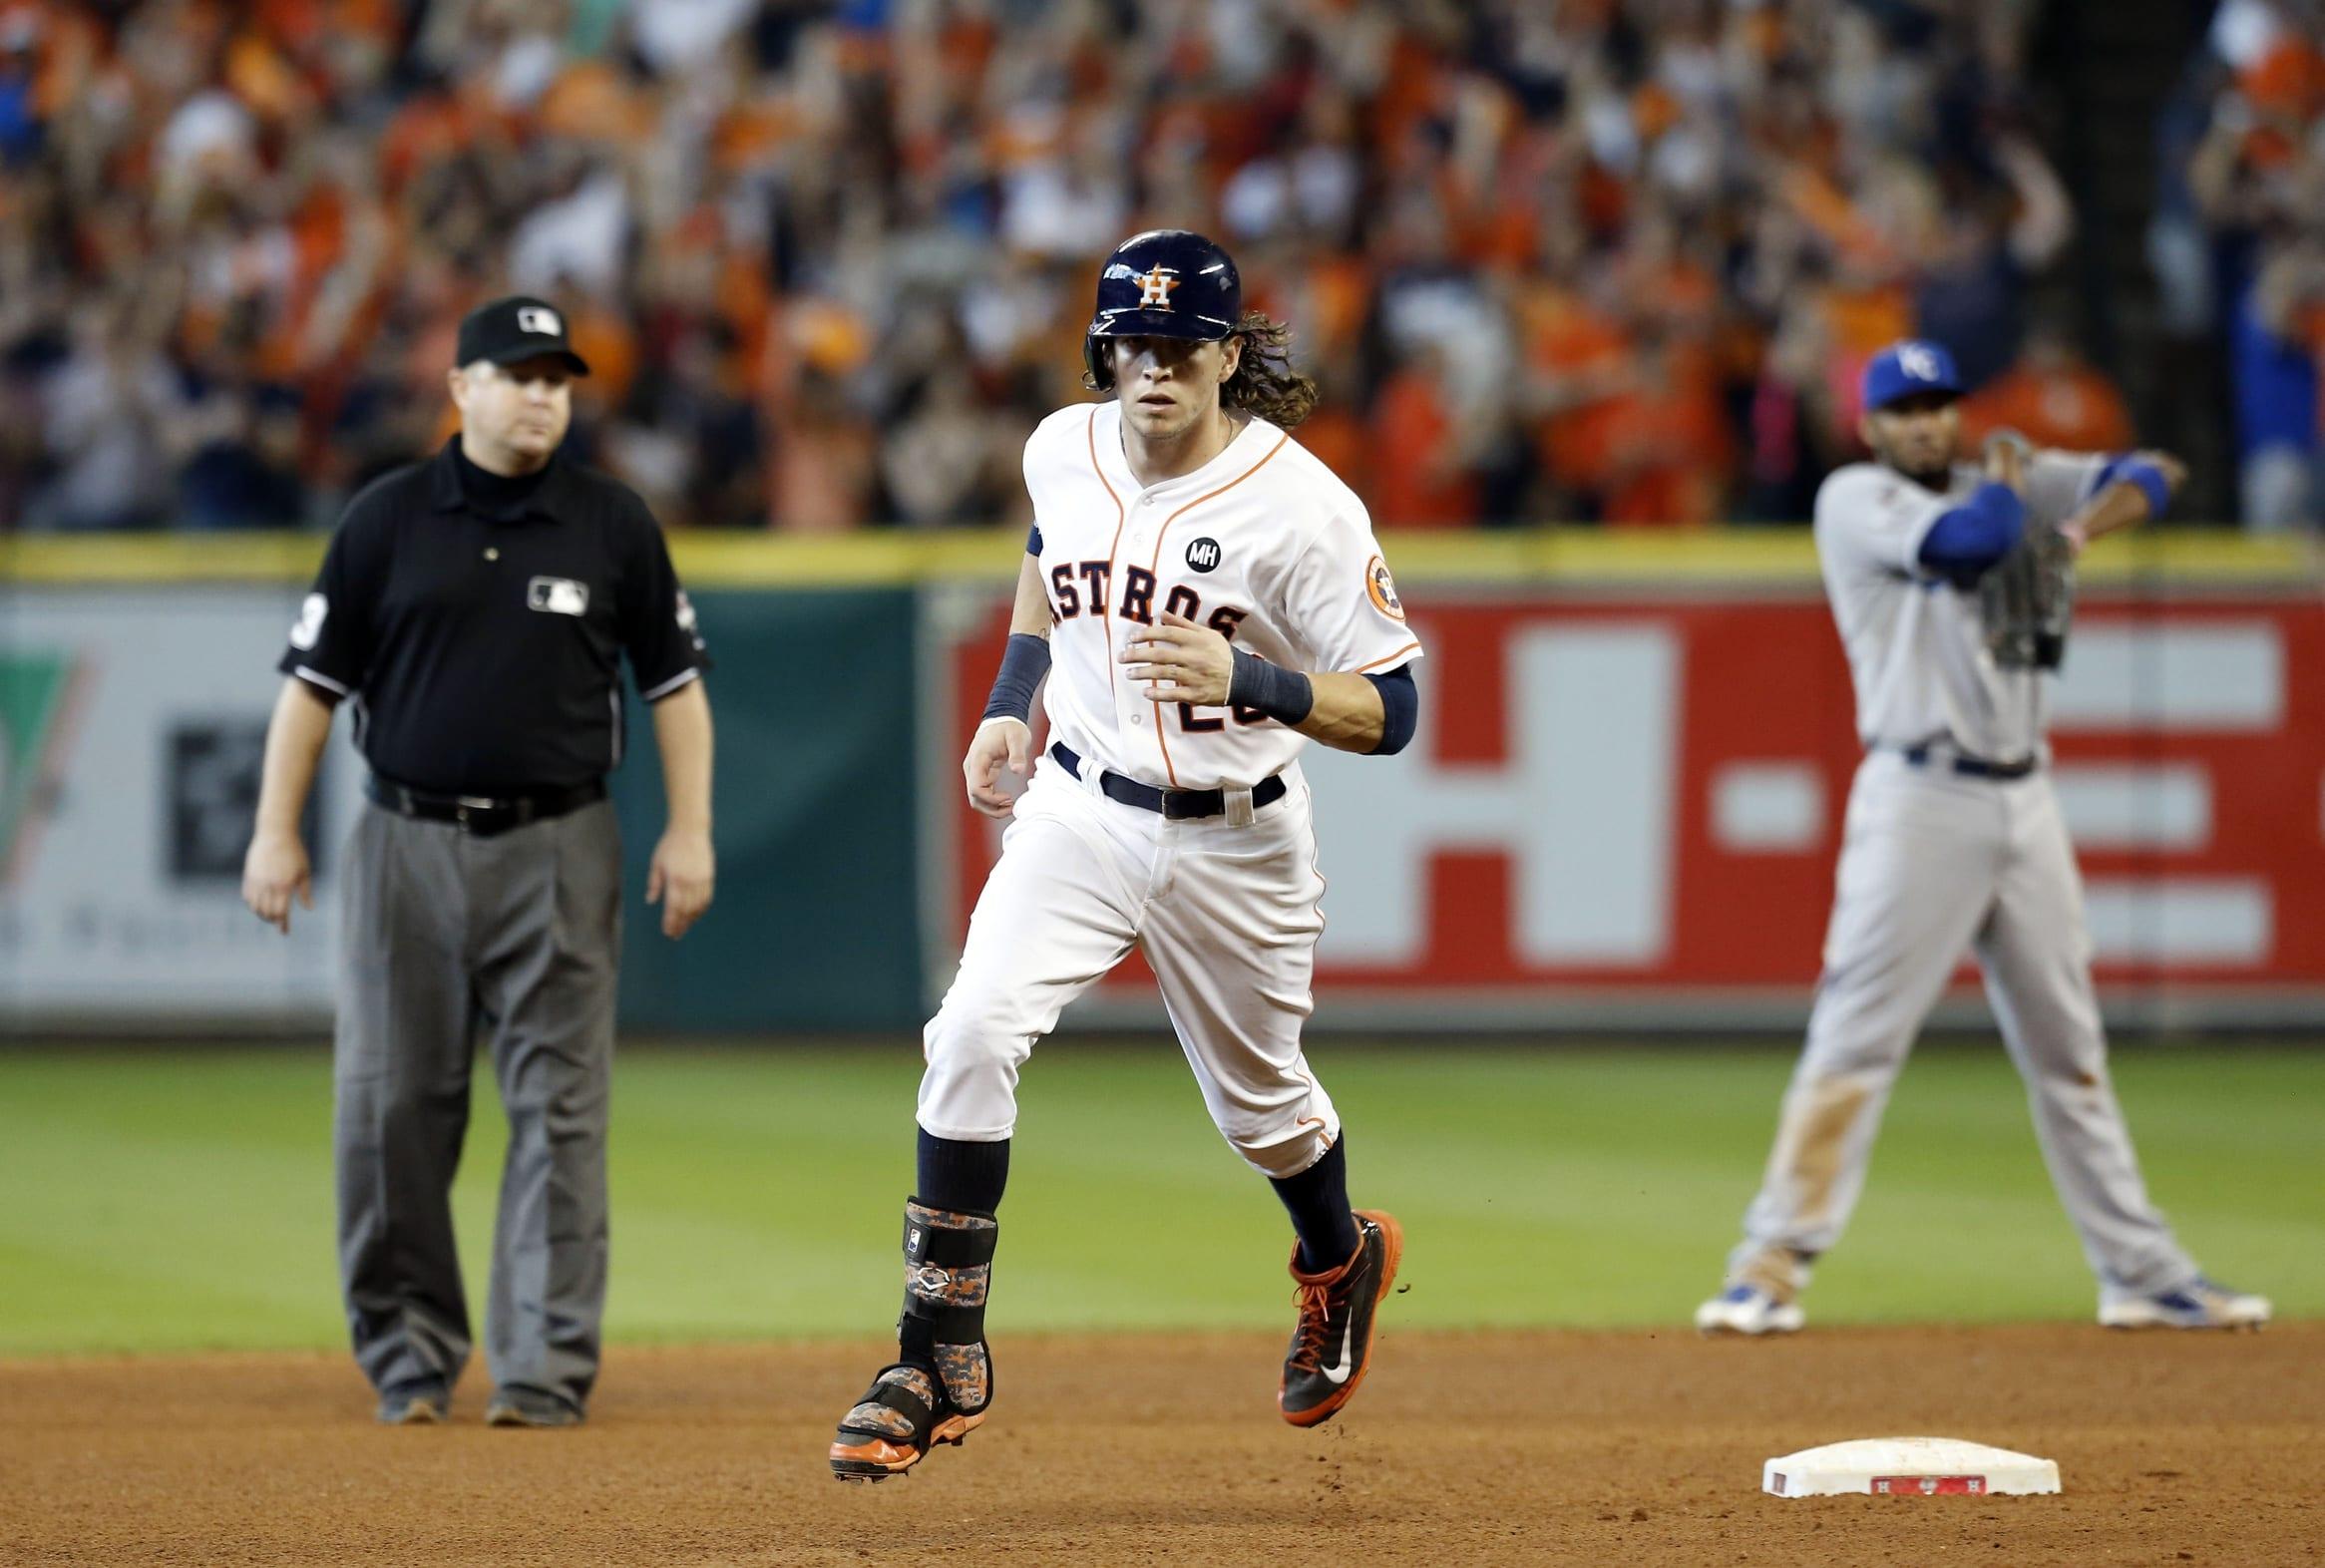 Mlb Rumors: Colby Rasmus Becomes First Player In Mlb History To Accept Qualifying Offer